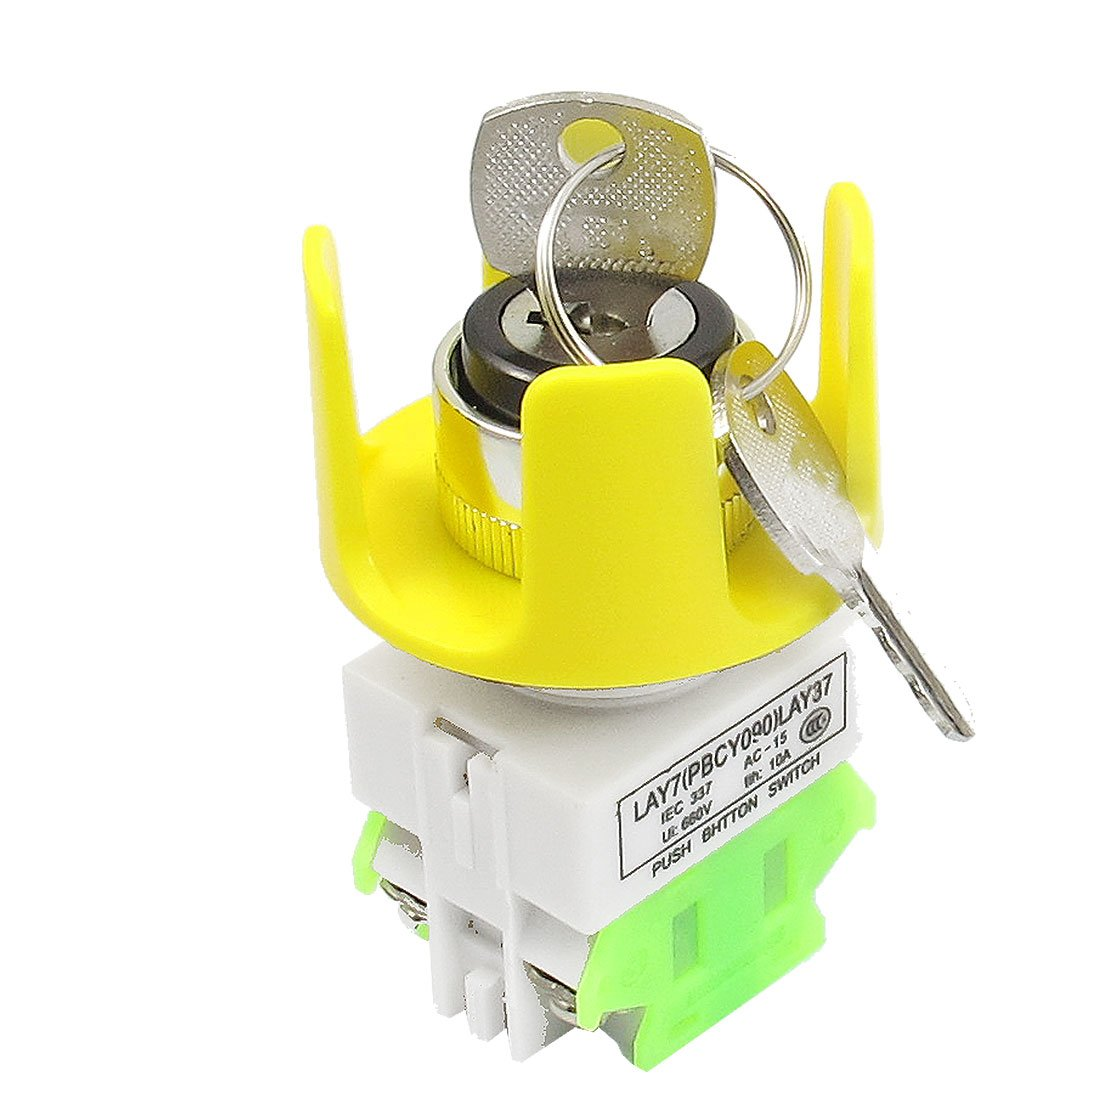 sourcing map 3 Position On/Off/On 4 Screw Terminals Keylock Push Button Switch + 2 Keys a12081700ux0182